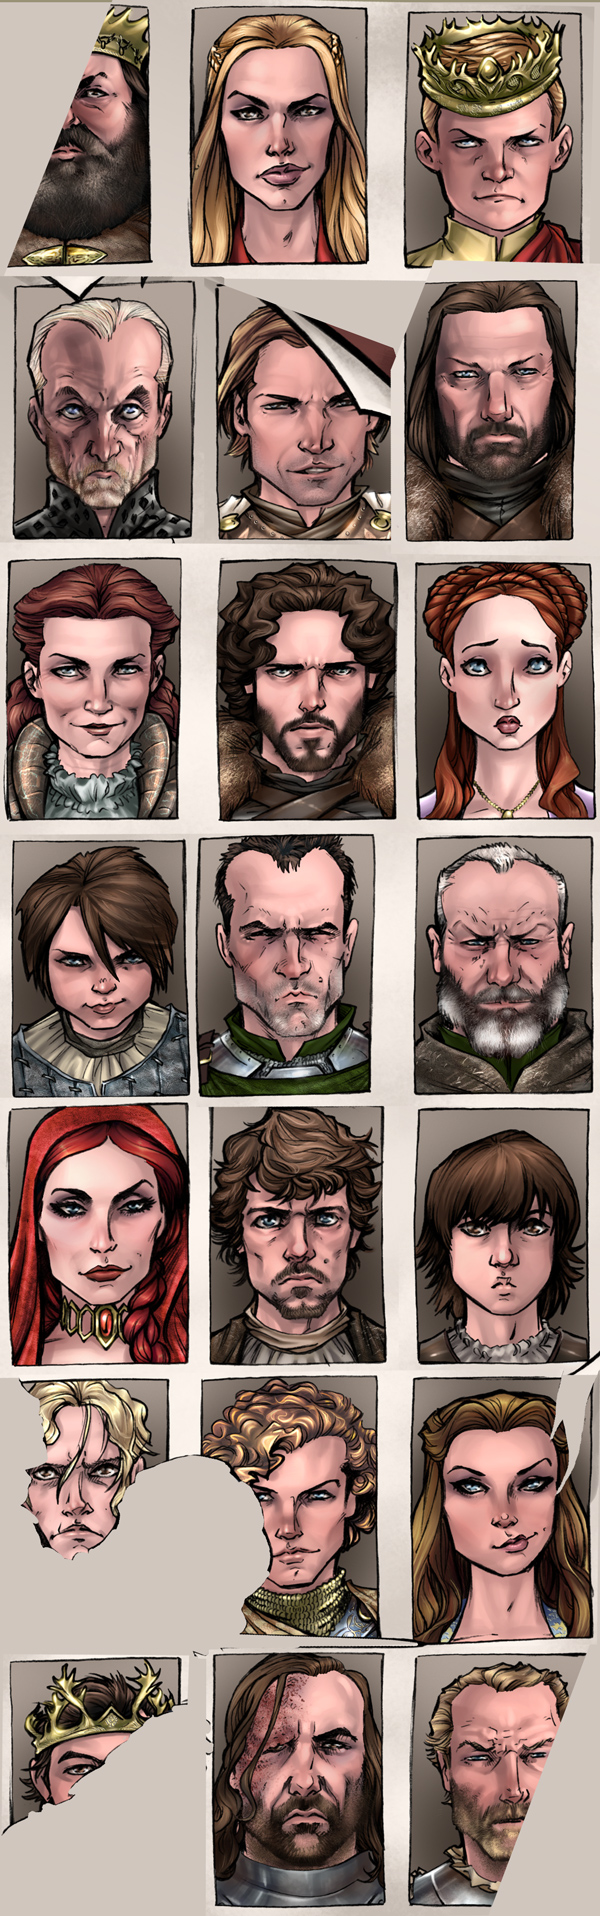 game_of_thrones_details_by_adamwithers-d7akcgo